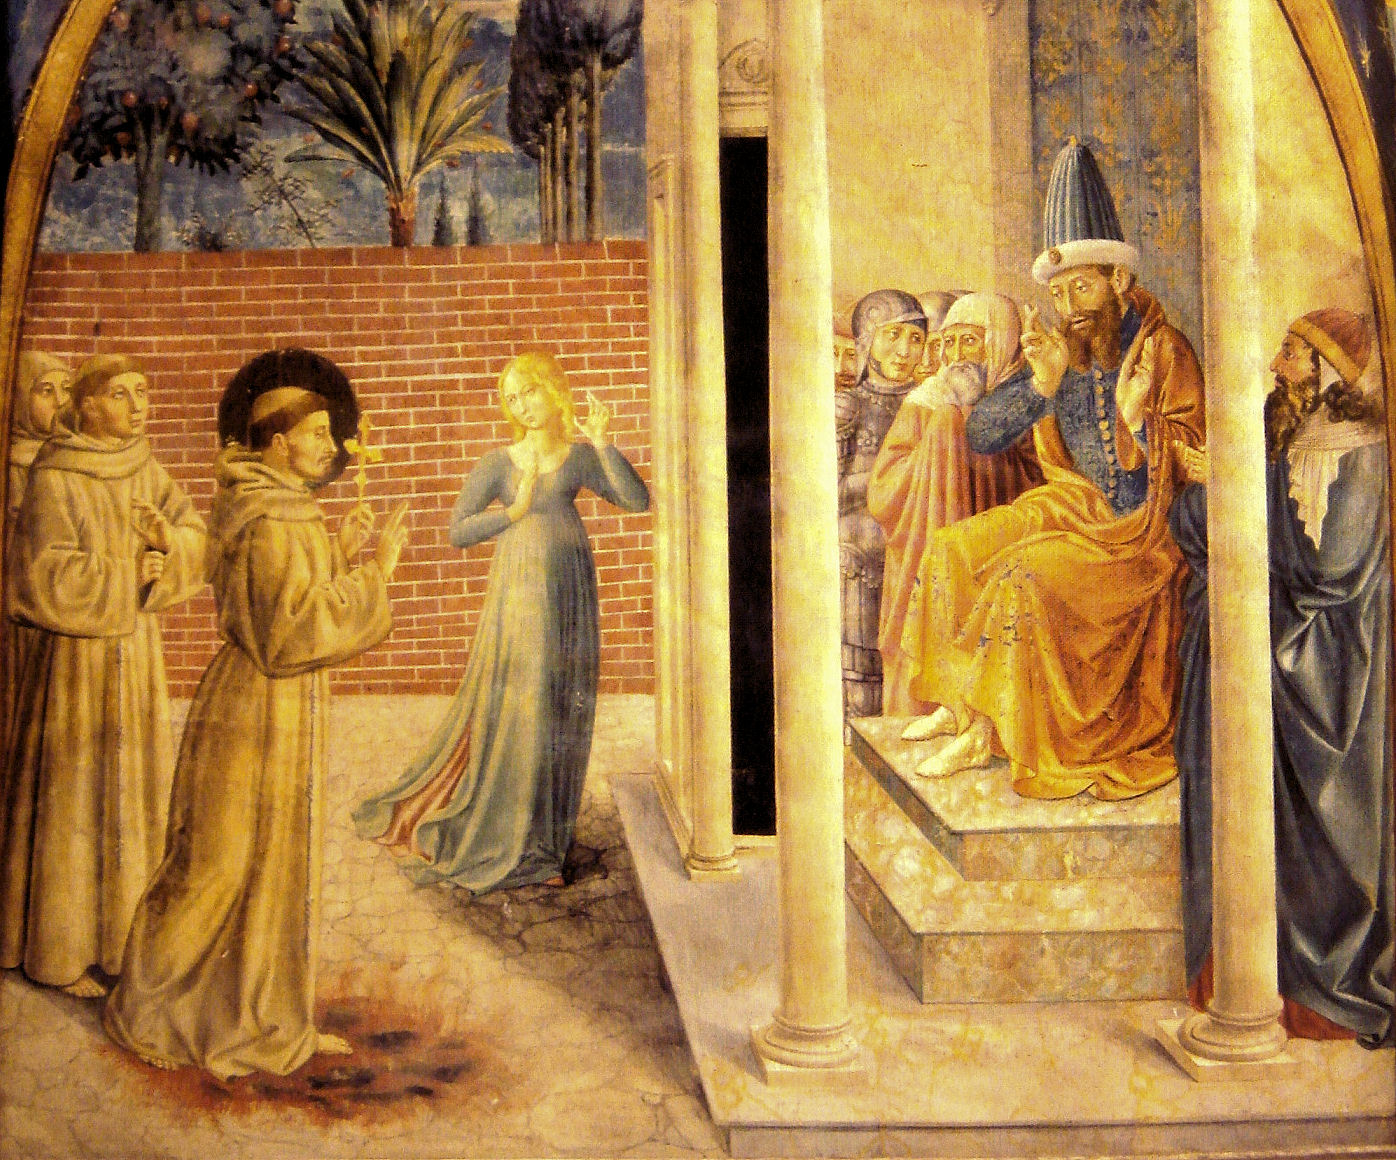 Saint Francis of Assisi with the Sultan Al-Kamil